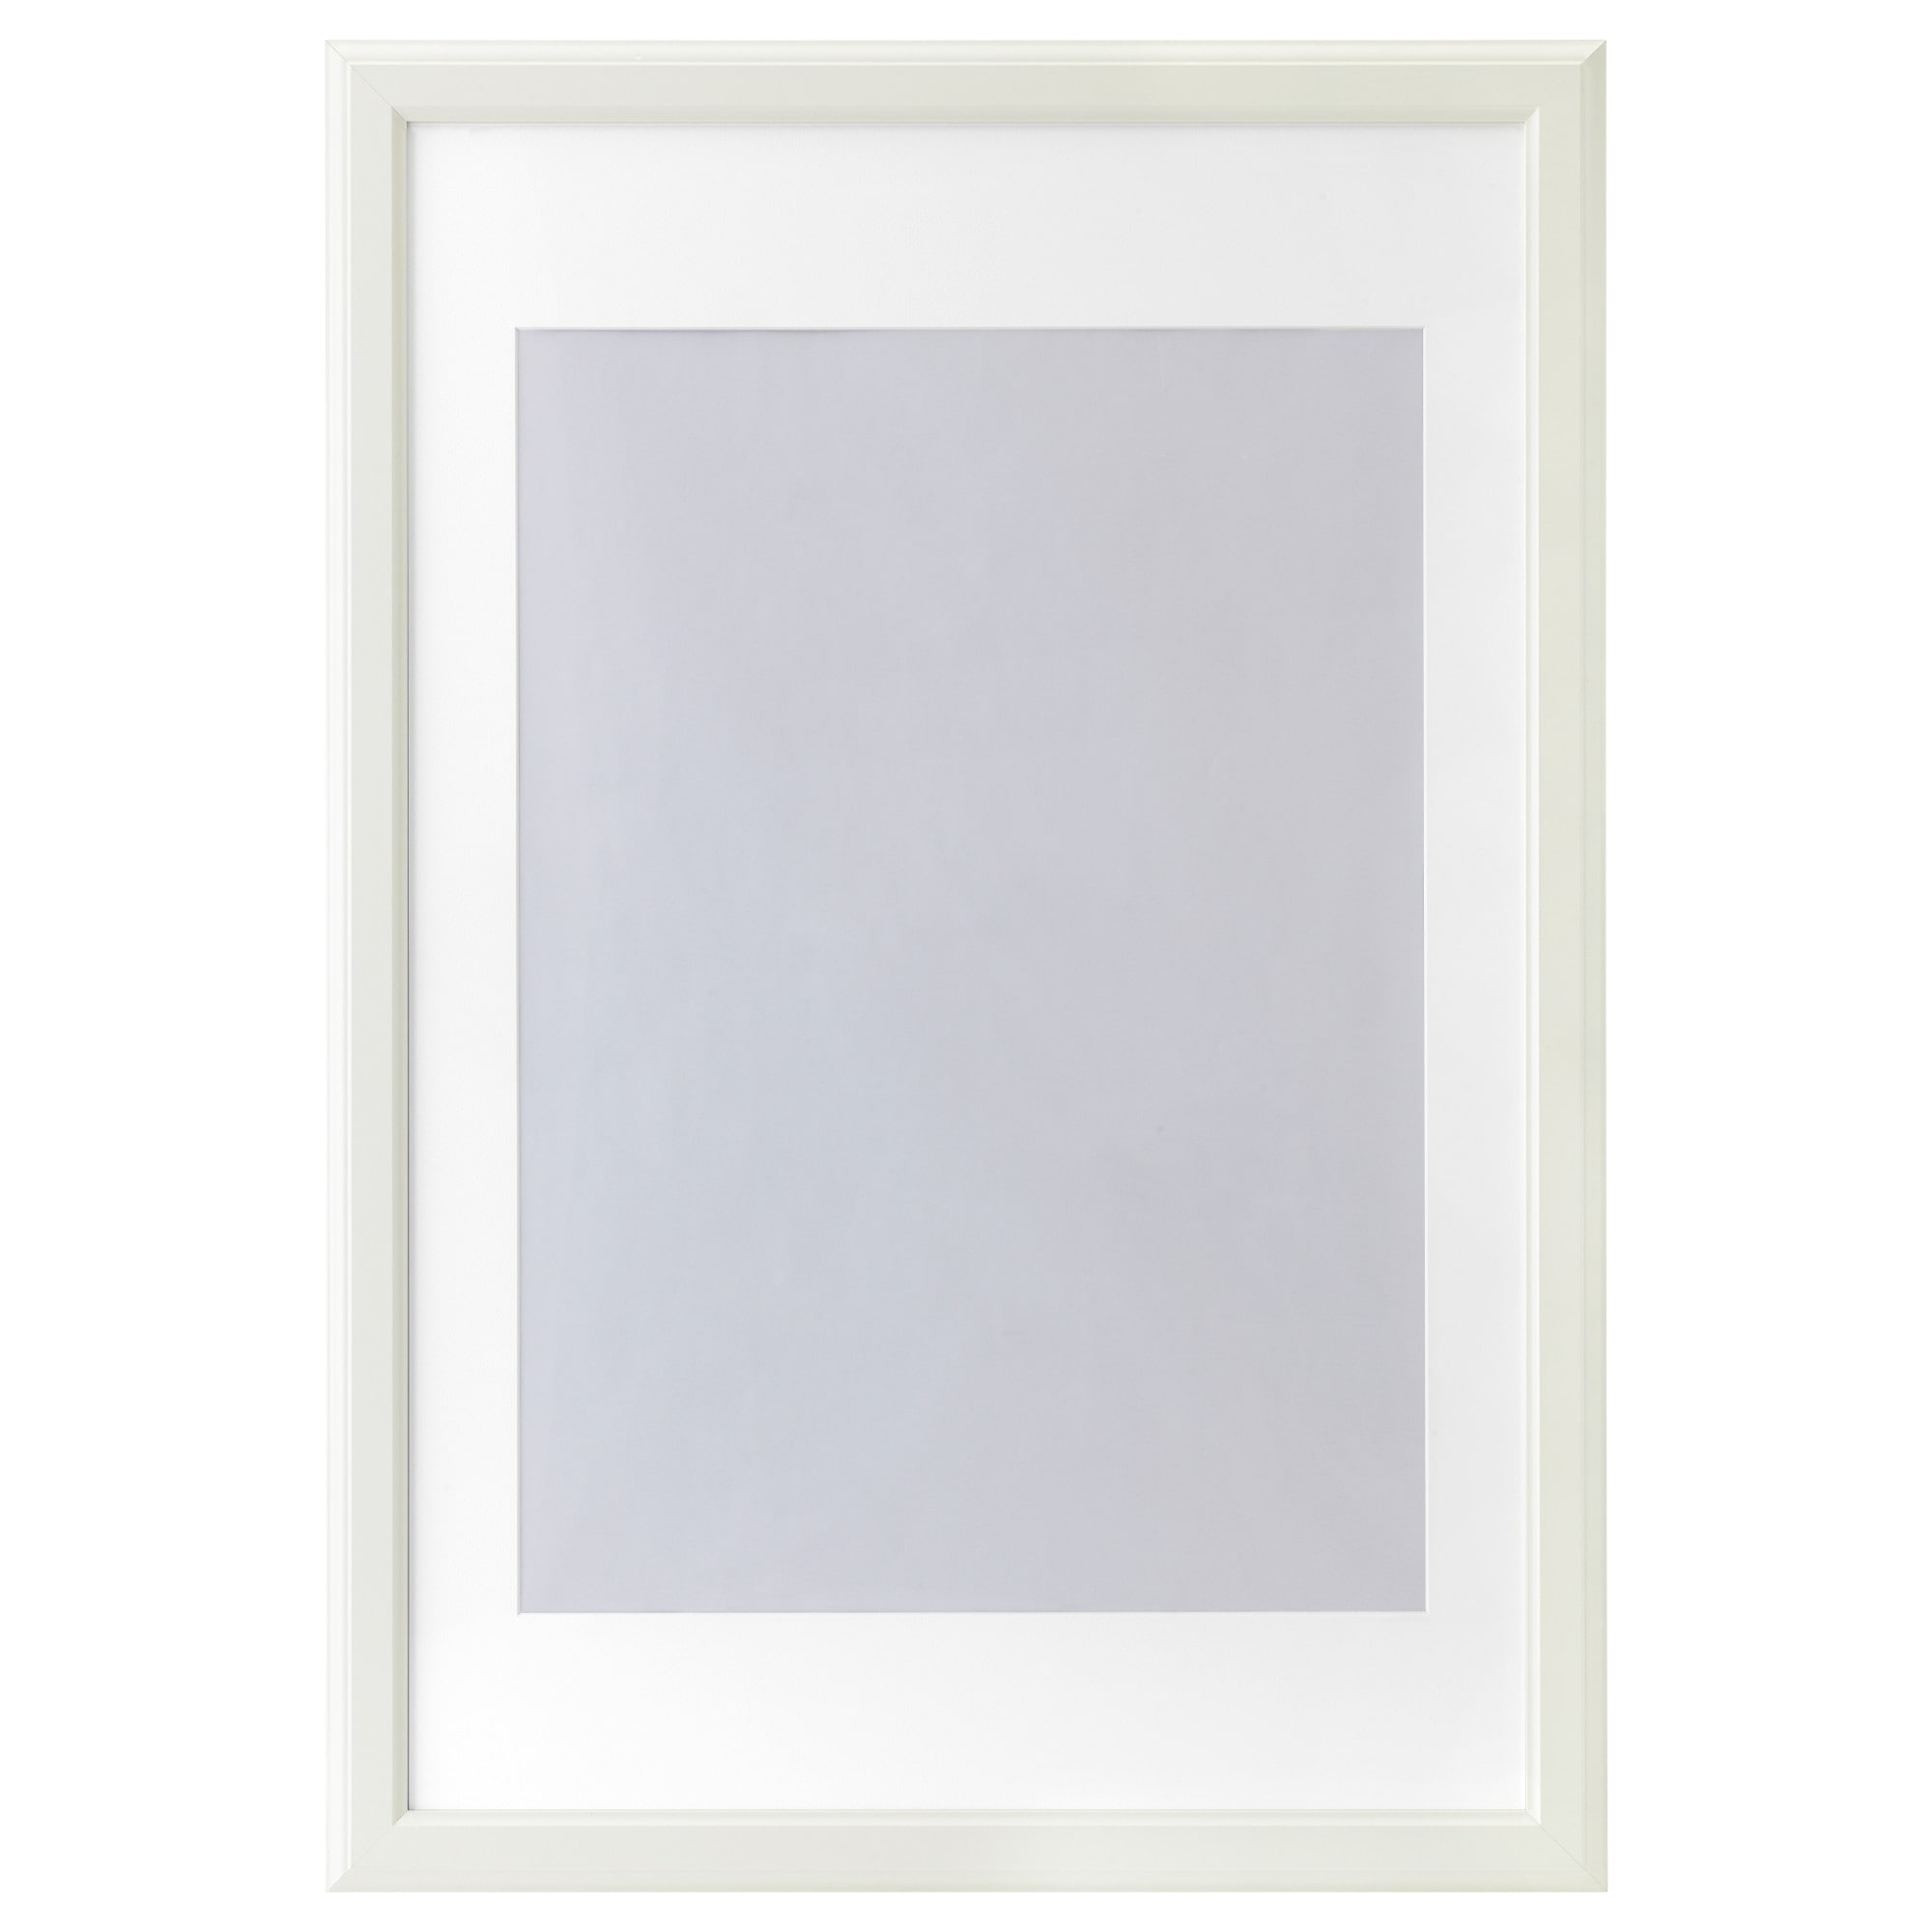 White Wall Frames wall frames - frames & pictures - ikea